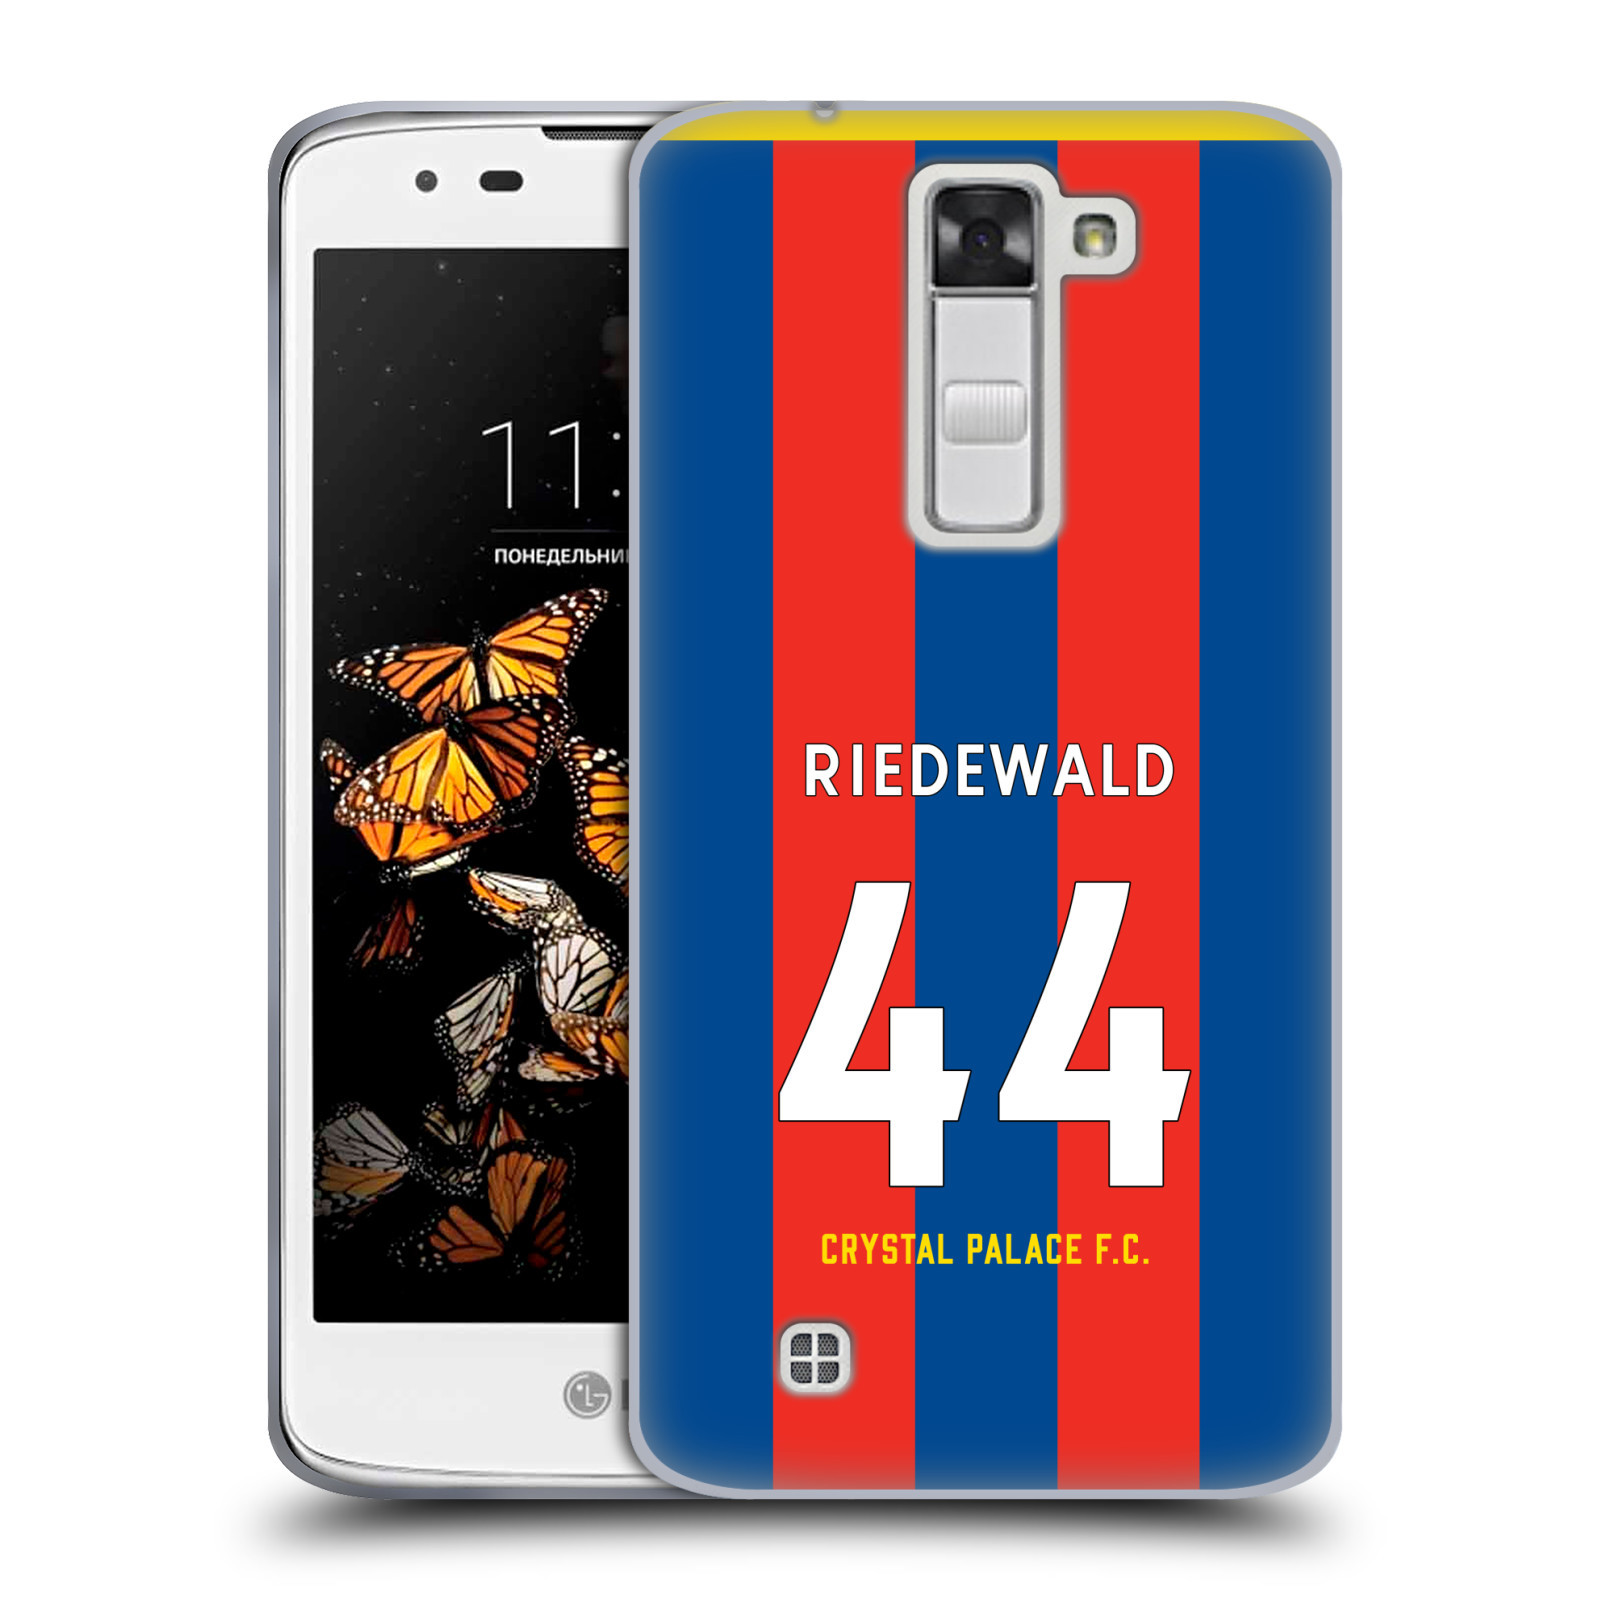 OFFICIAL-CRYSTAL-PALACE-FC-2017-18-PLAYERS-HOME-KIT-2-GEL-CASE-FOR-LG-PHONES-2